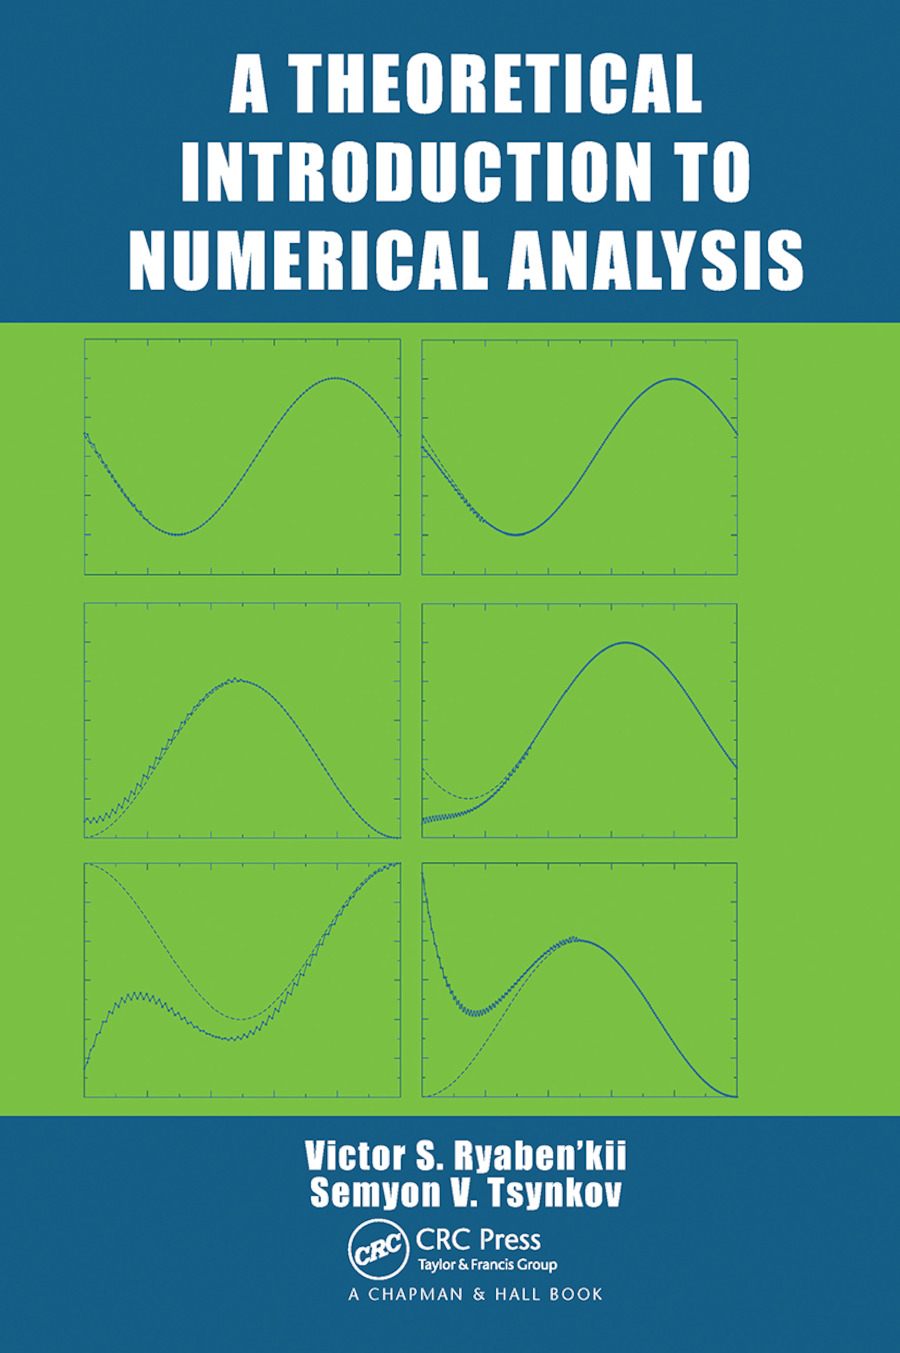 A Theoretical Introduction to Numerical Analysis book cover